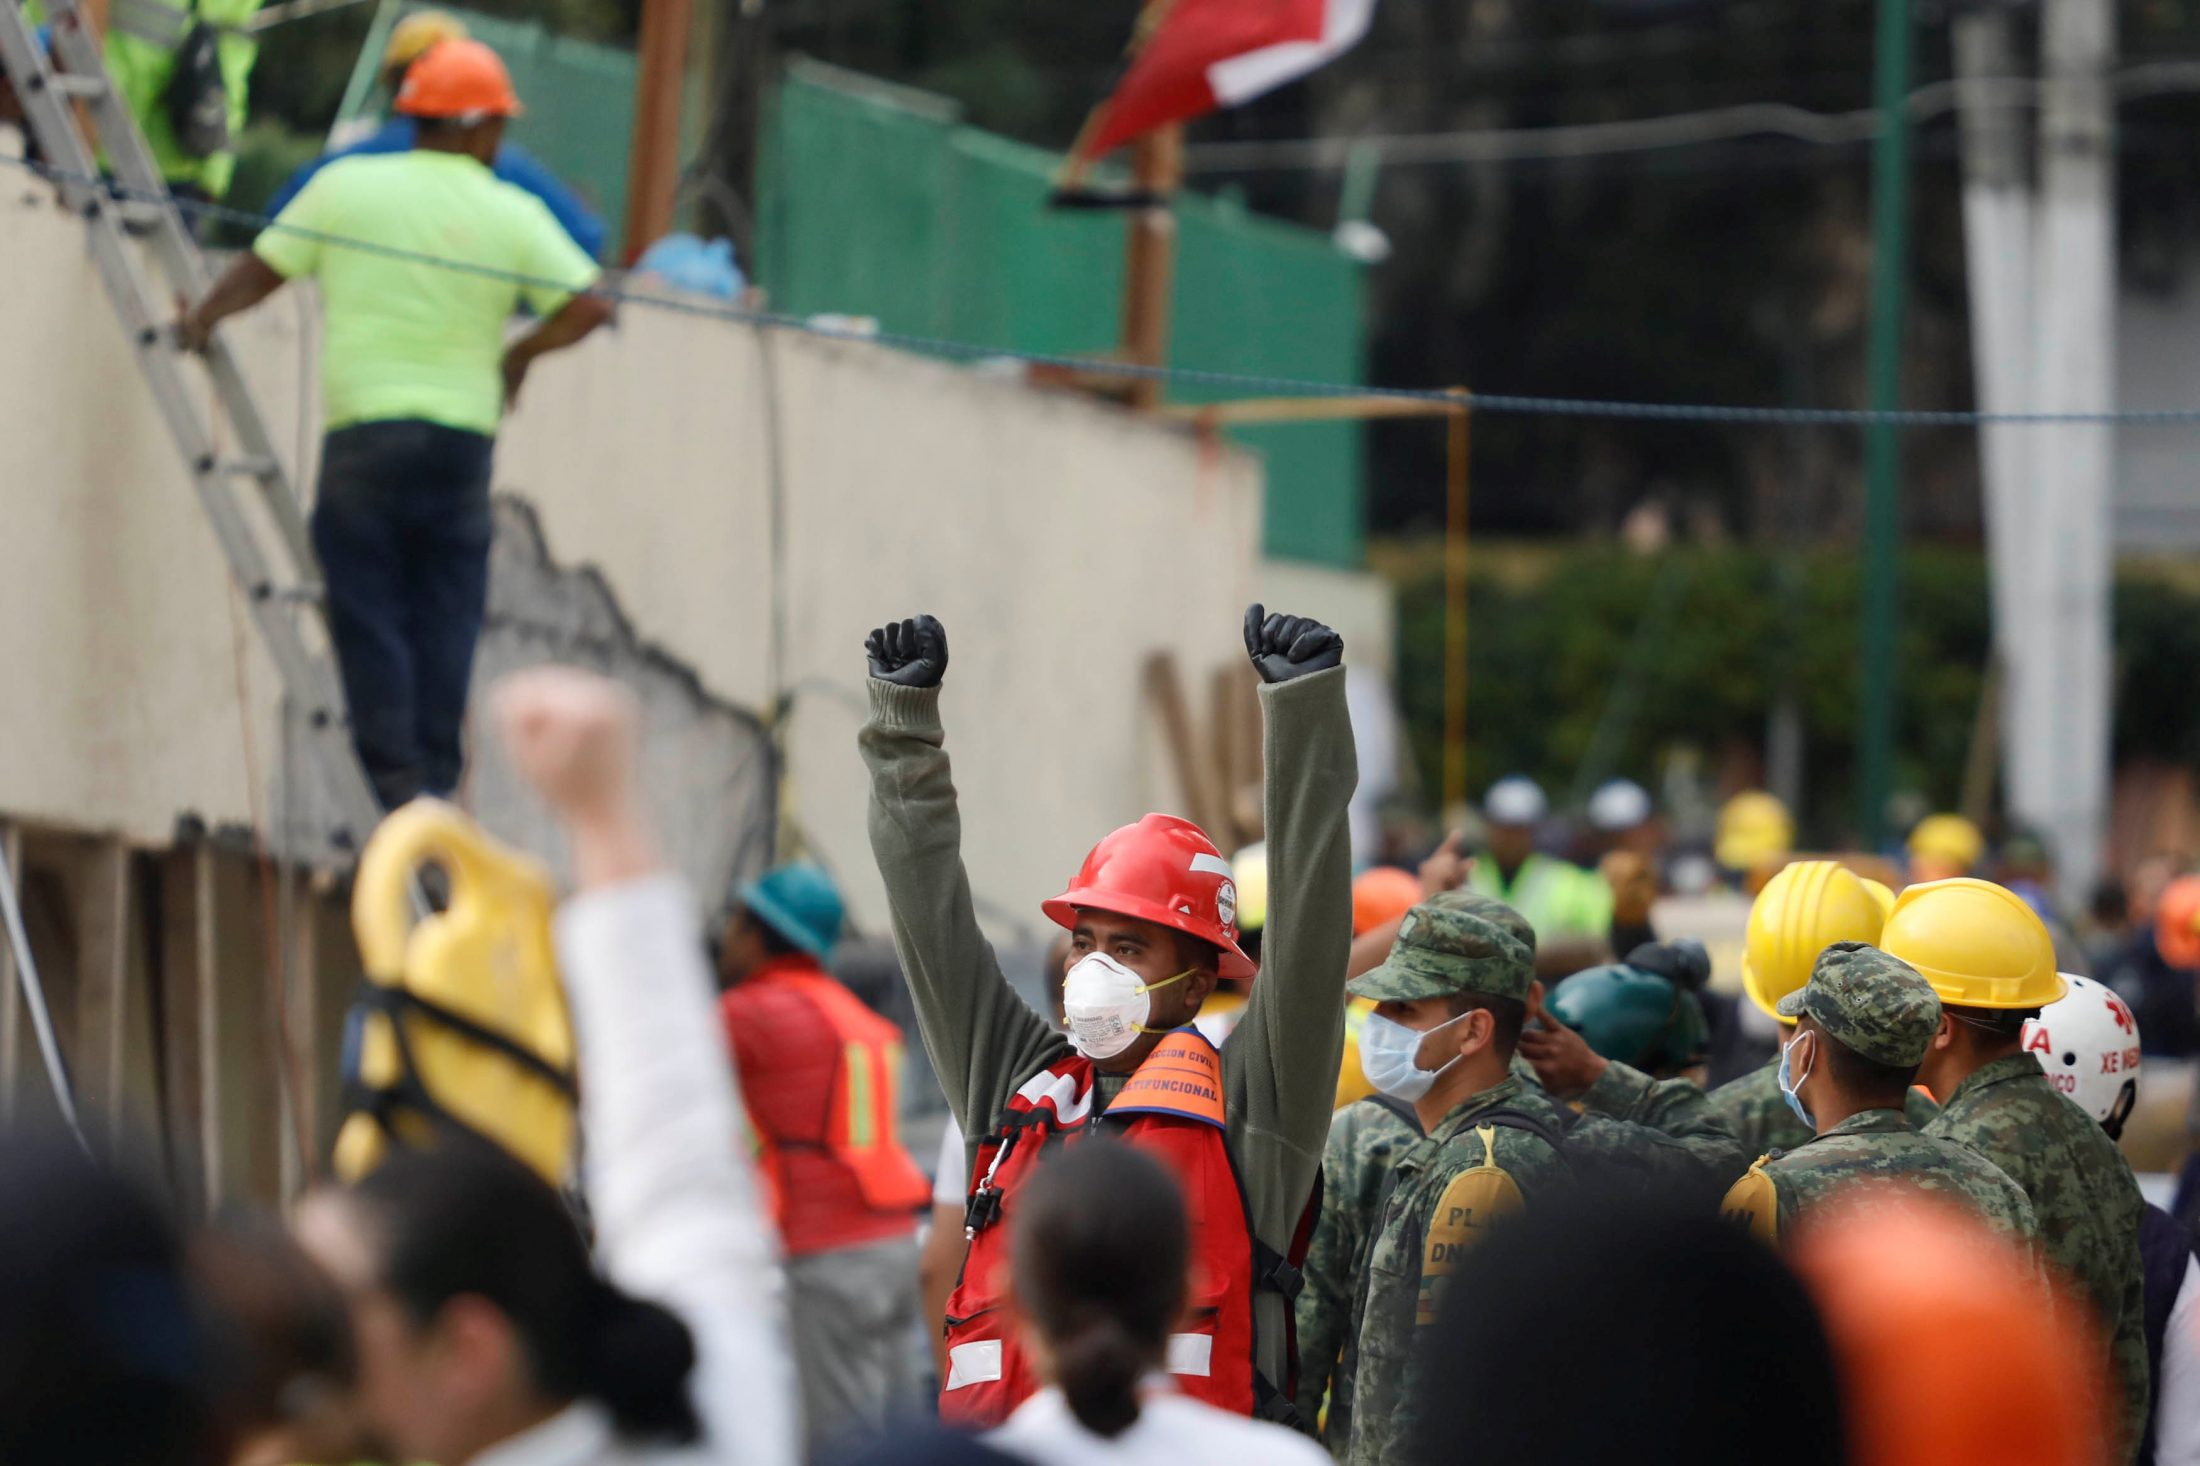 A rescue worker raises his hands to ask for silence during the search for students after an earthquake collapsed a school. Photo by Edgard Garrido/Reuters